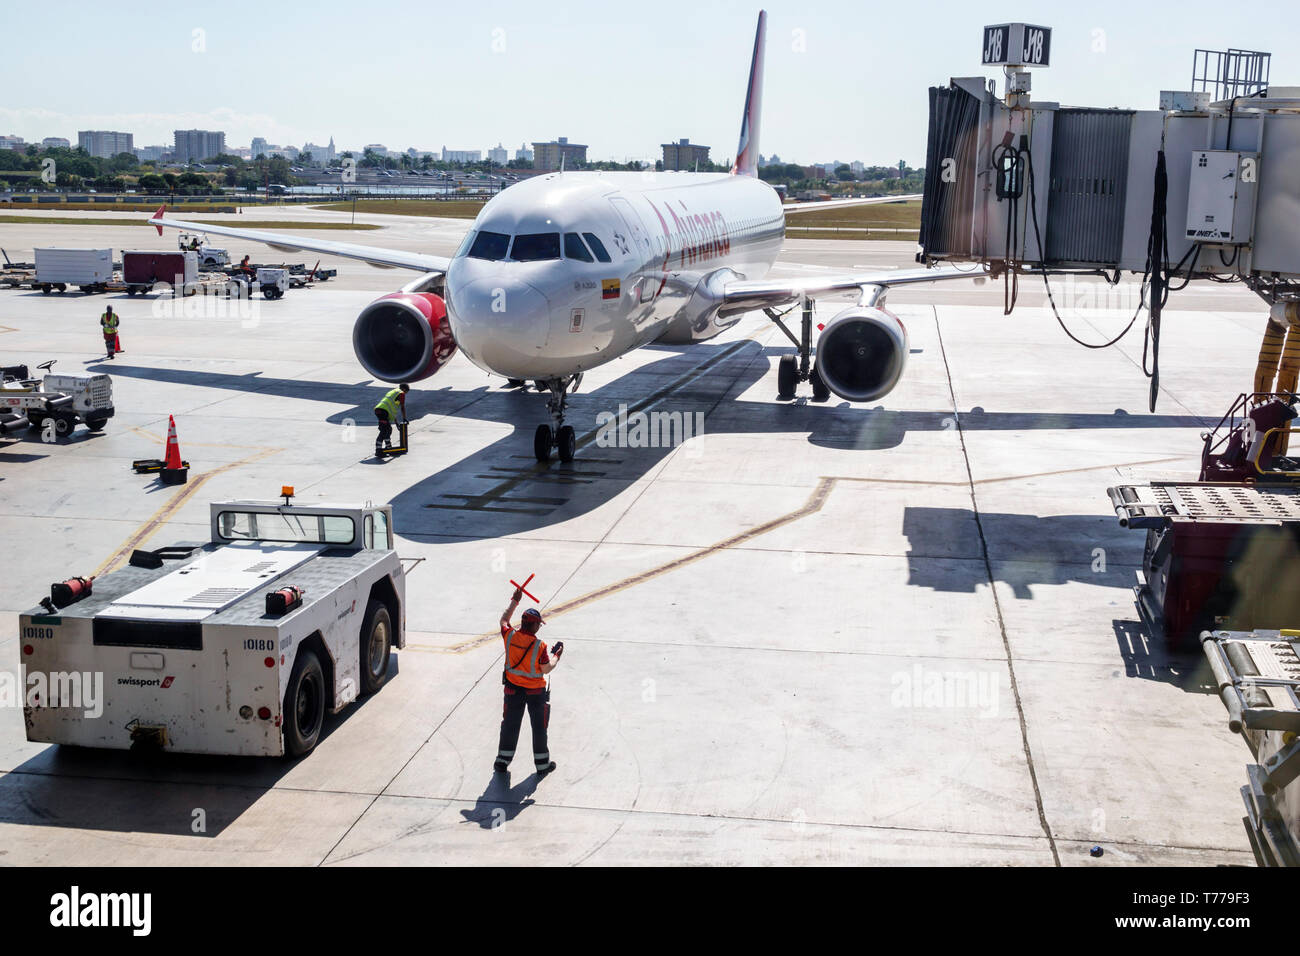 Miami Florida Miami International Airport MIA Avianca Airlines arriving jet airliner tarmac aircraft marshaller service area commercial airliner airpl - Stock Image